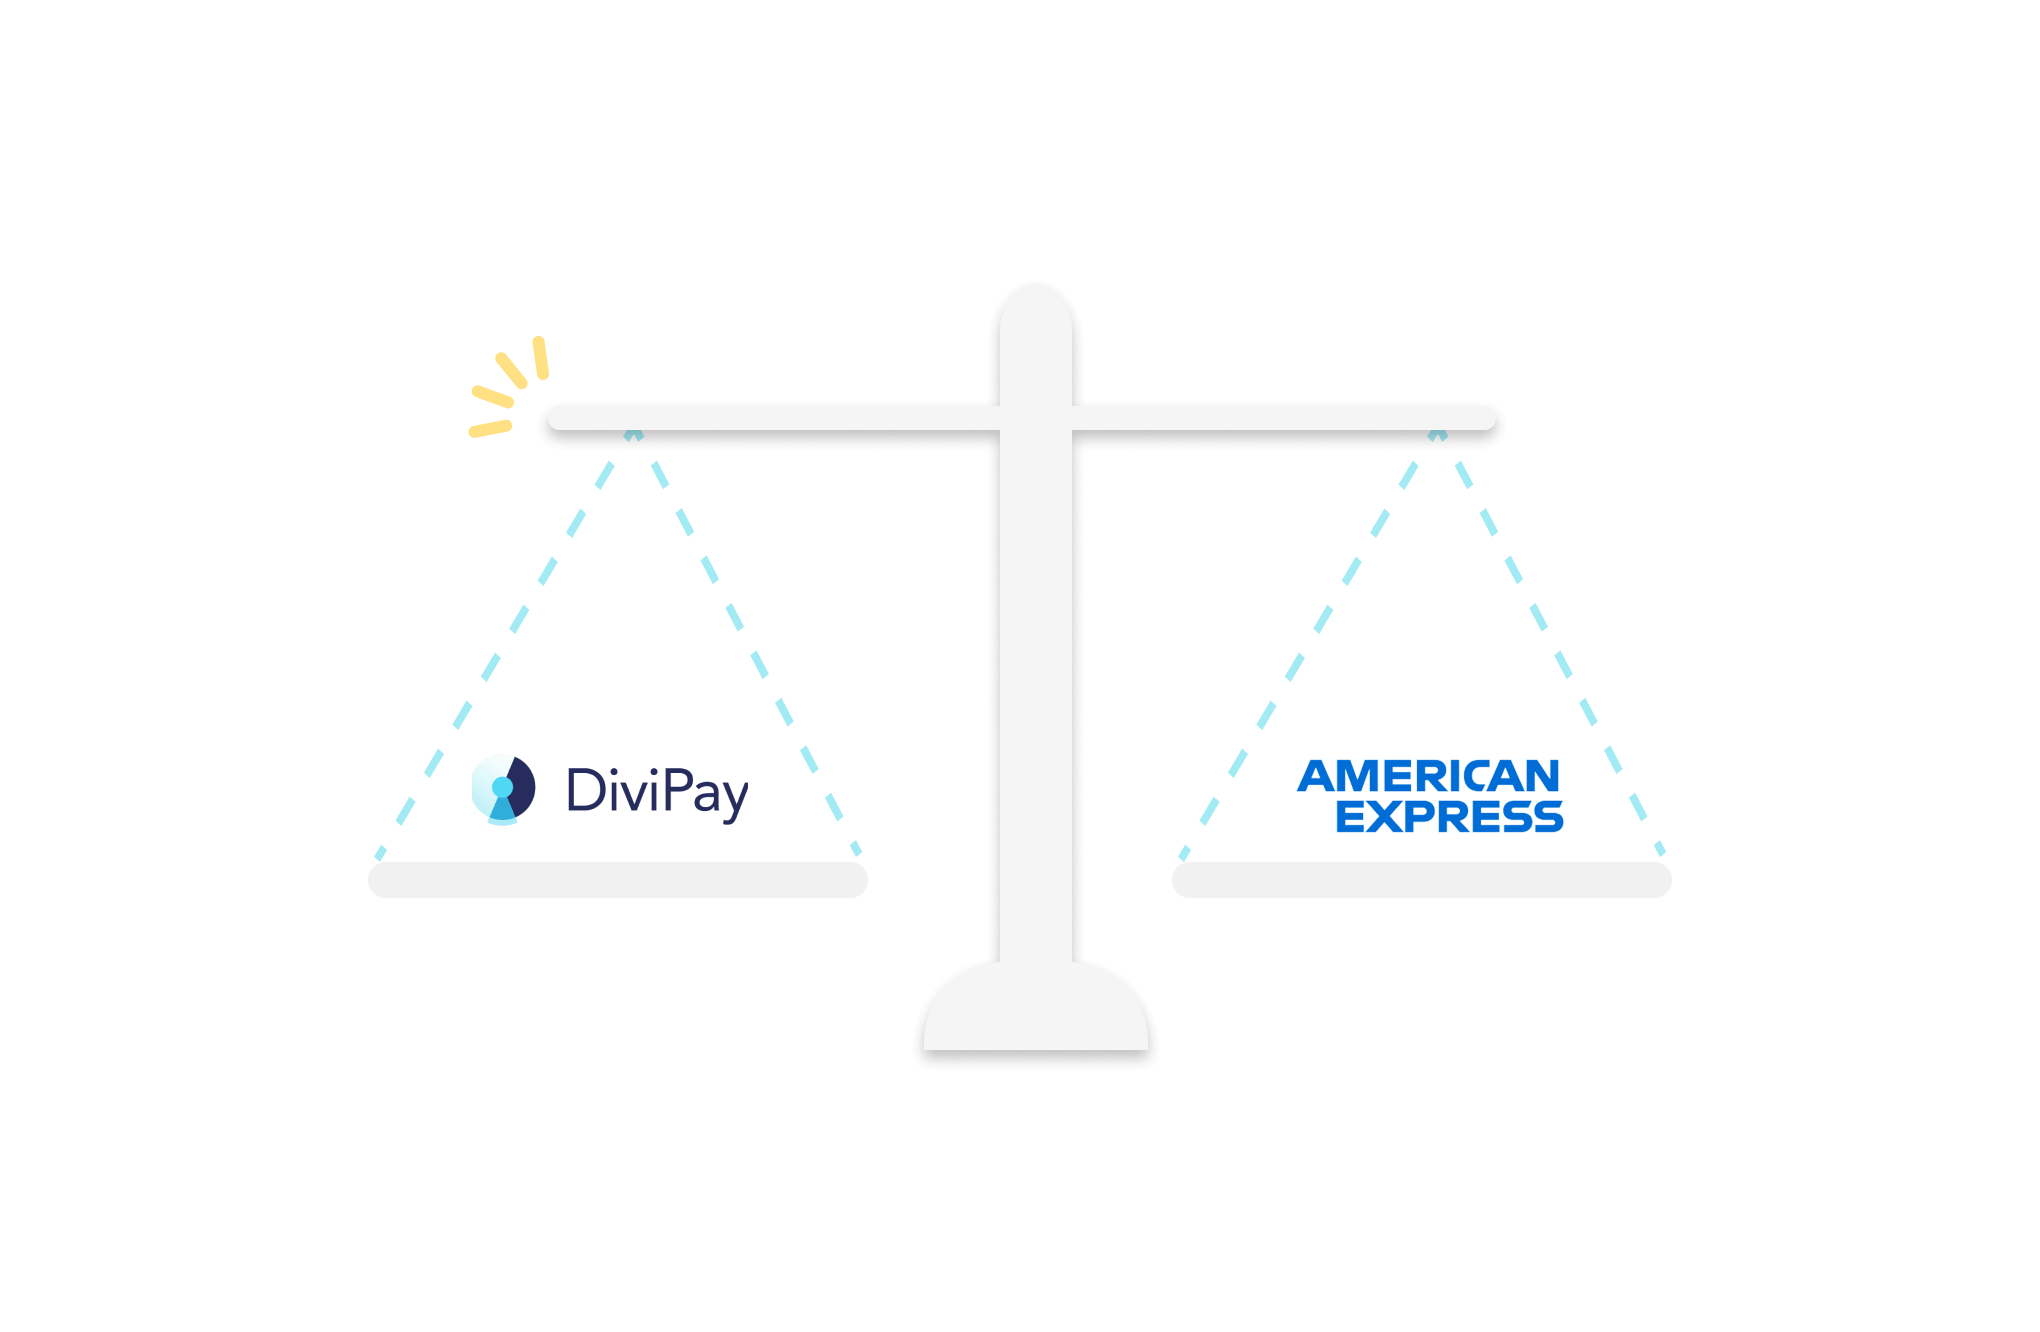 DiviPay vs American Express scale